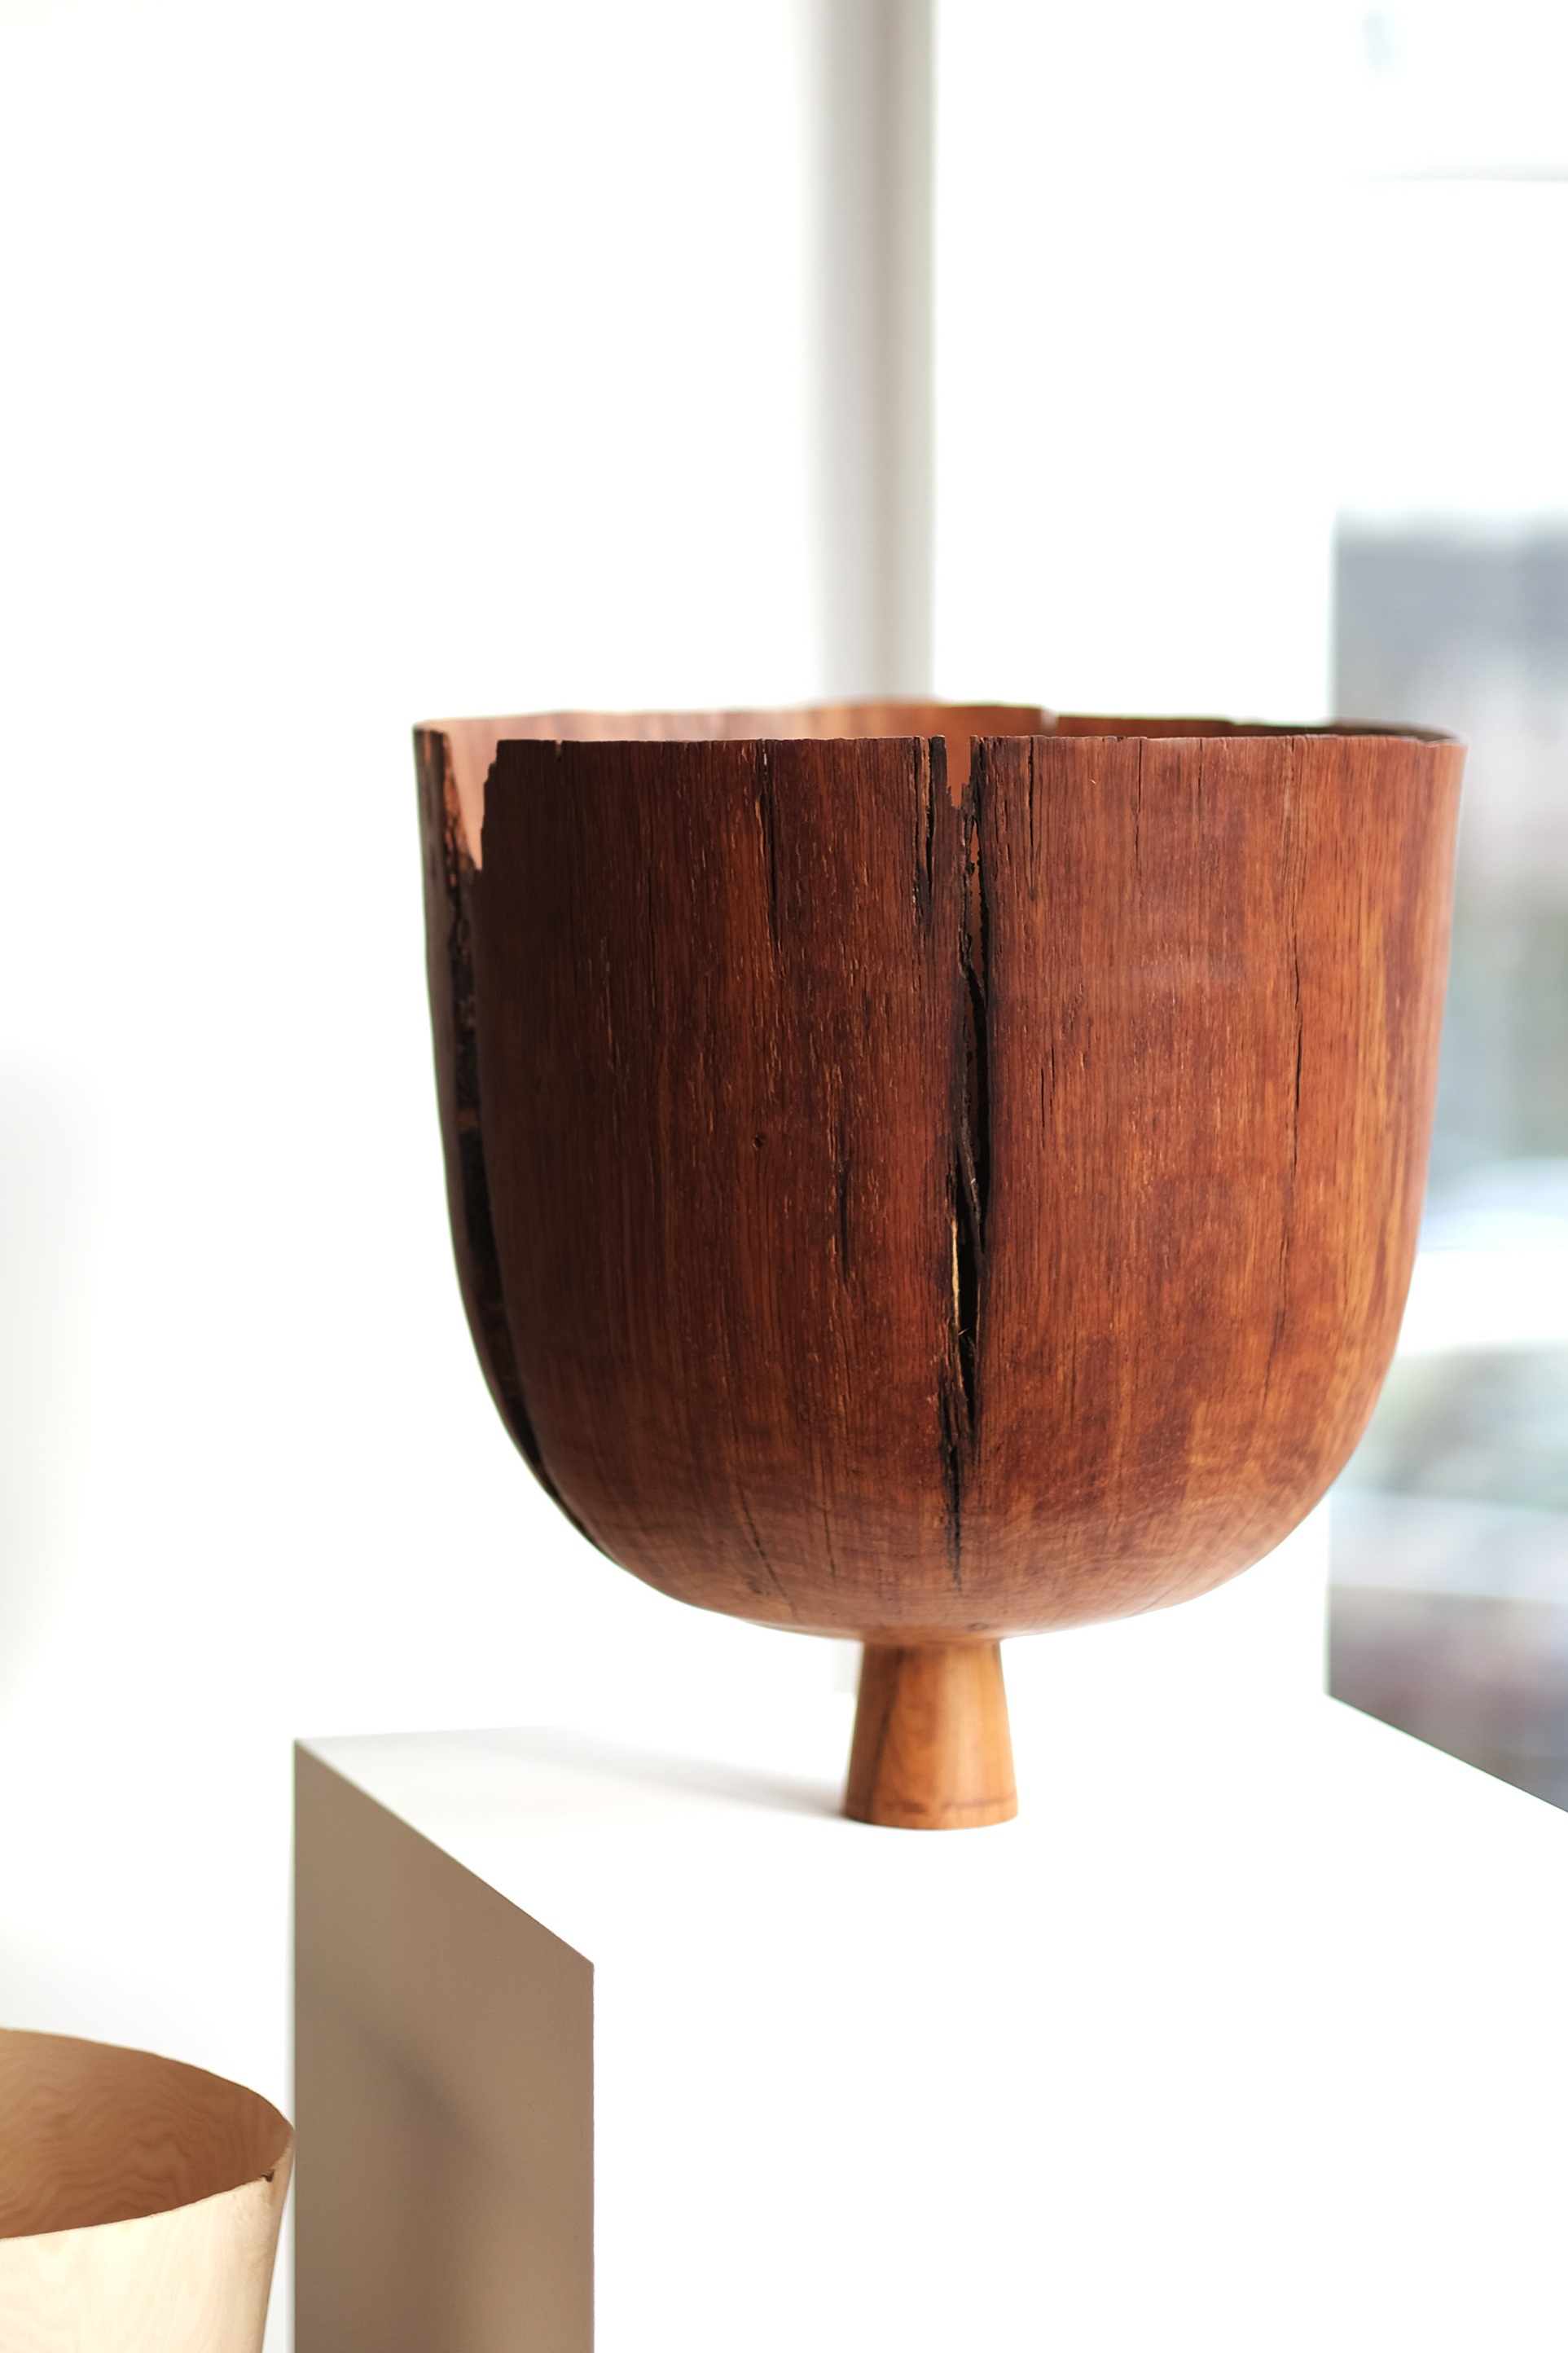 Tenanted Oak Vessel  | brown oak, 35cm x 33cm, 2018  Installation View: Levelling Traditions, Make Hauser & Wirth Somerset, Bruton